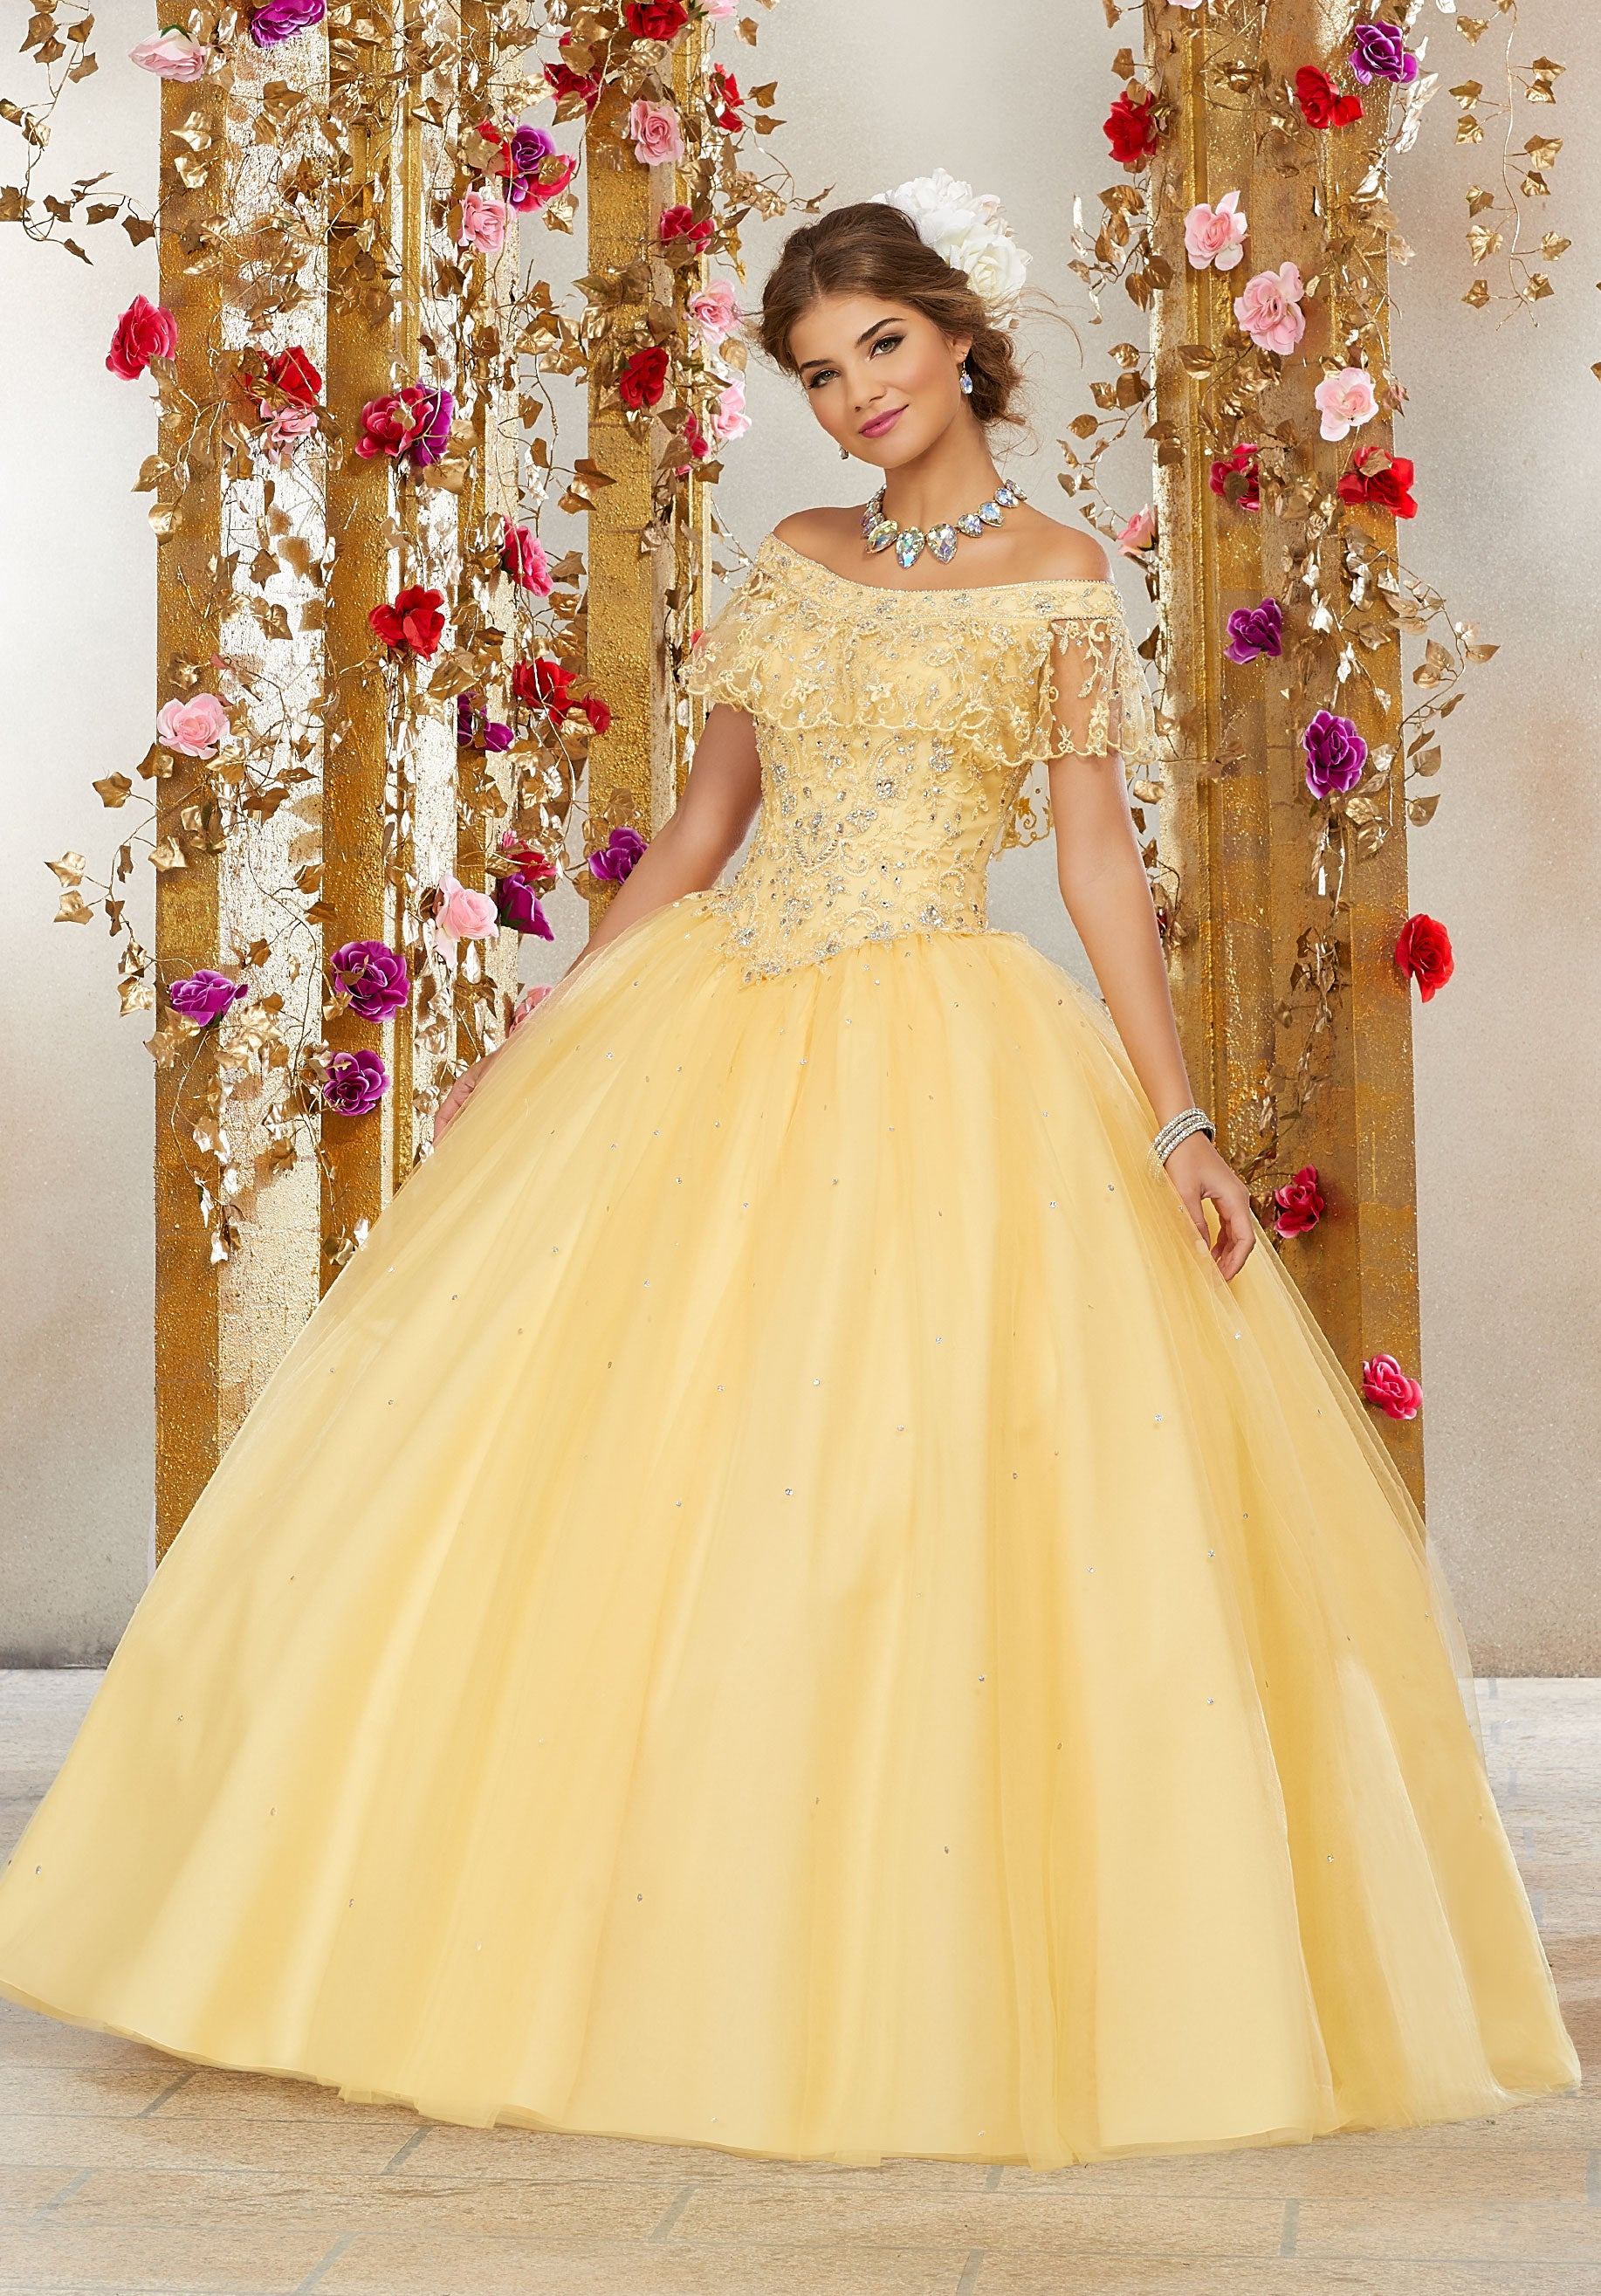 db99e6f33ed Beaded Tulle Off the Shoulder Ball Gown Dress for Quinceaneras ...